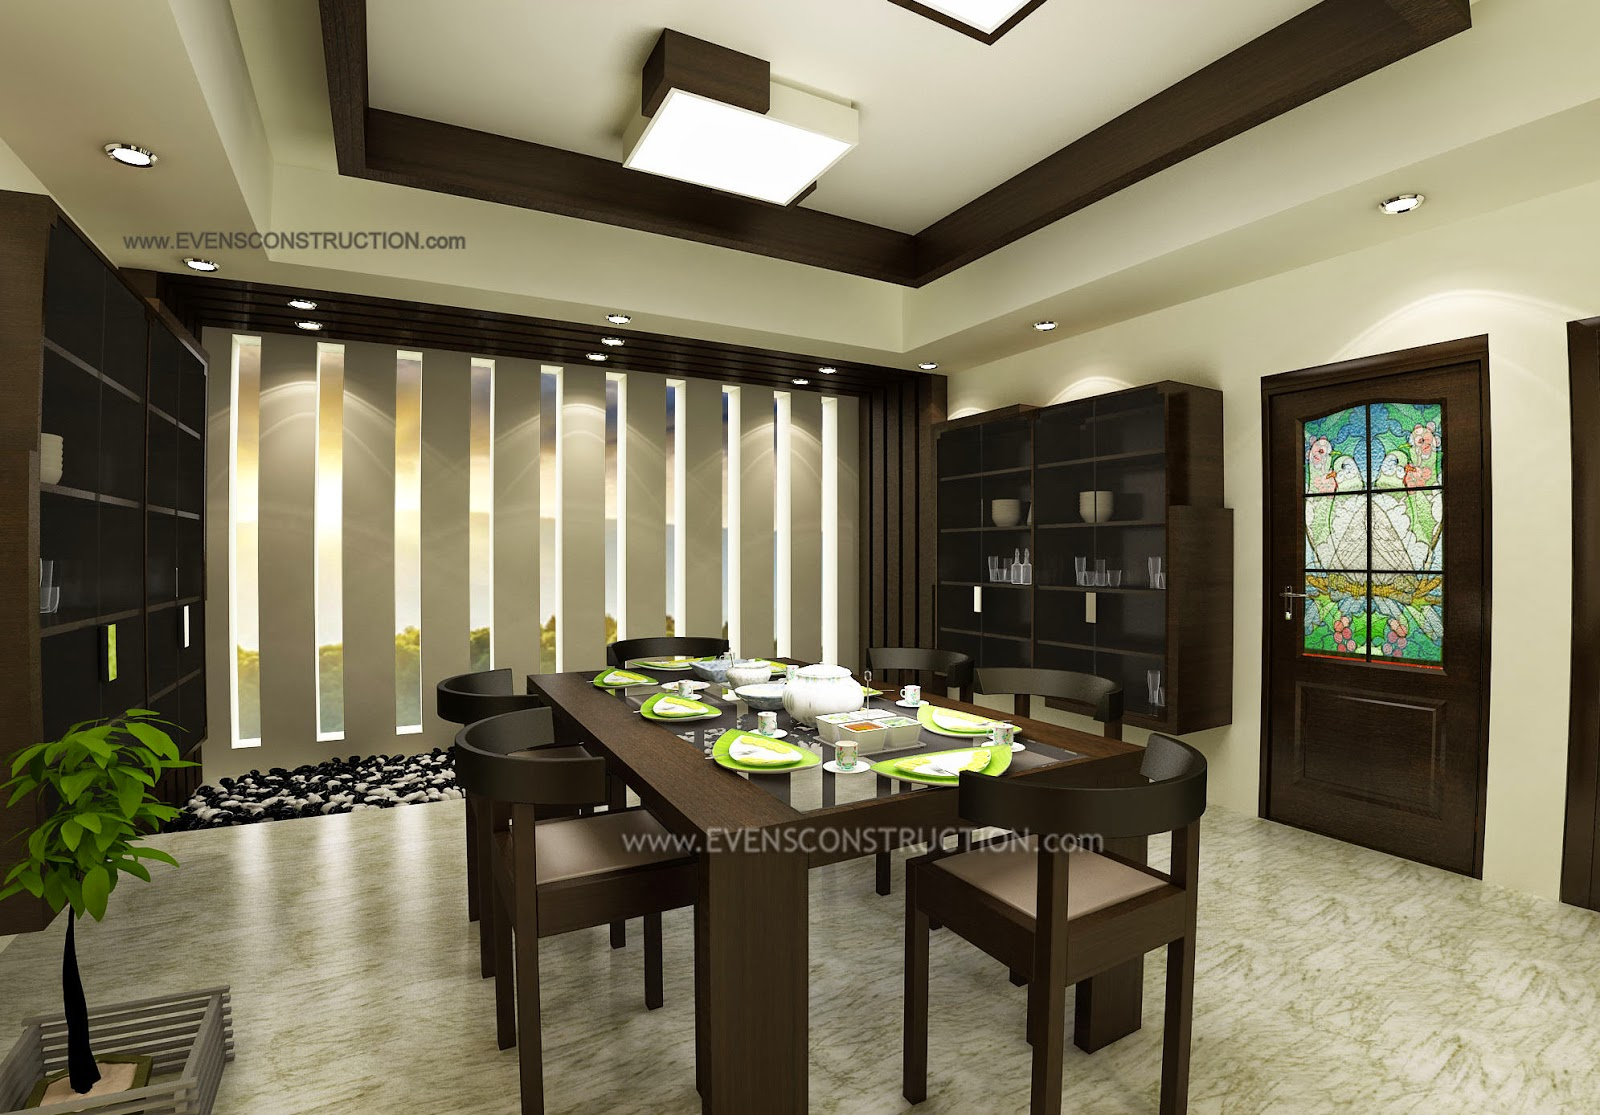 Evens construction pvt ltd modern dining room for Kitchen dining hall design